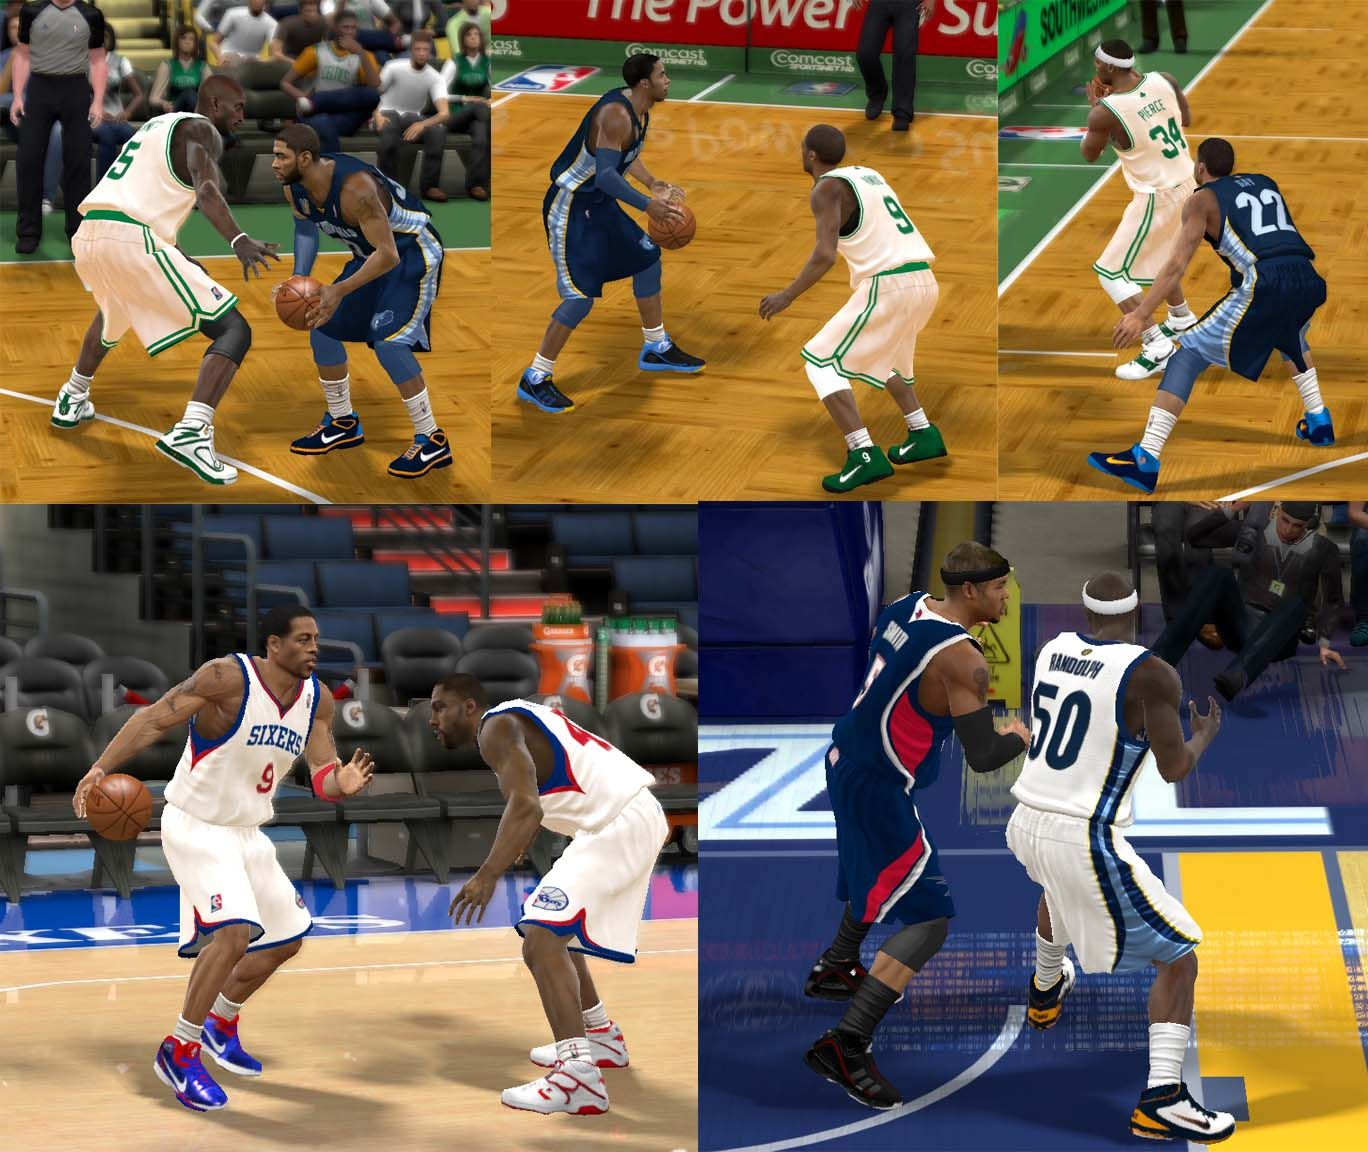 NBA 2K11 Real Shoes Mod Released